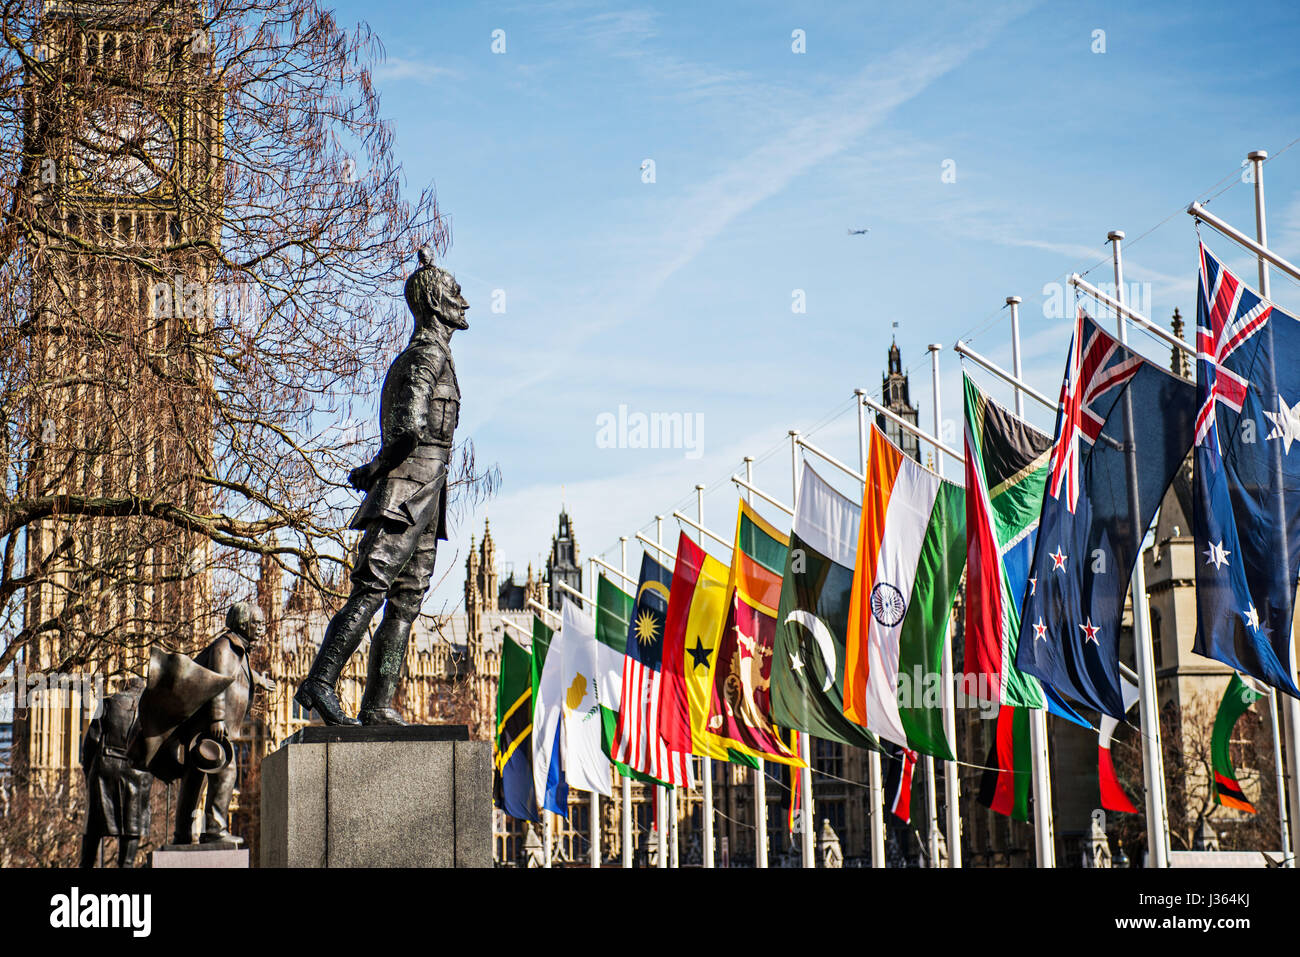 Statue of Jan Christian Smuts (1870 - 1950) outside parliament with flags and Big Ben. - Stock Image